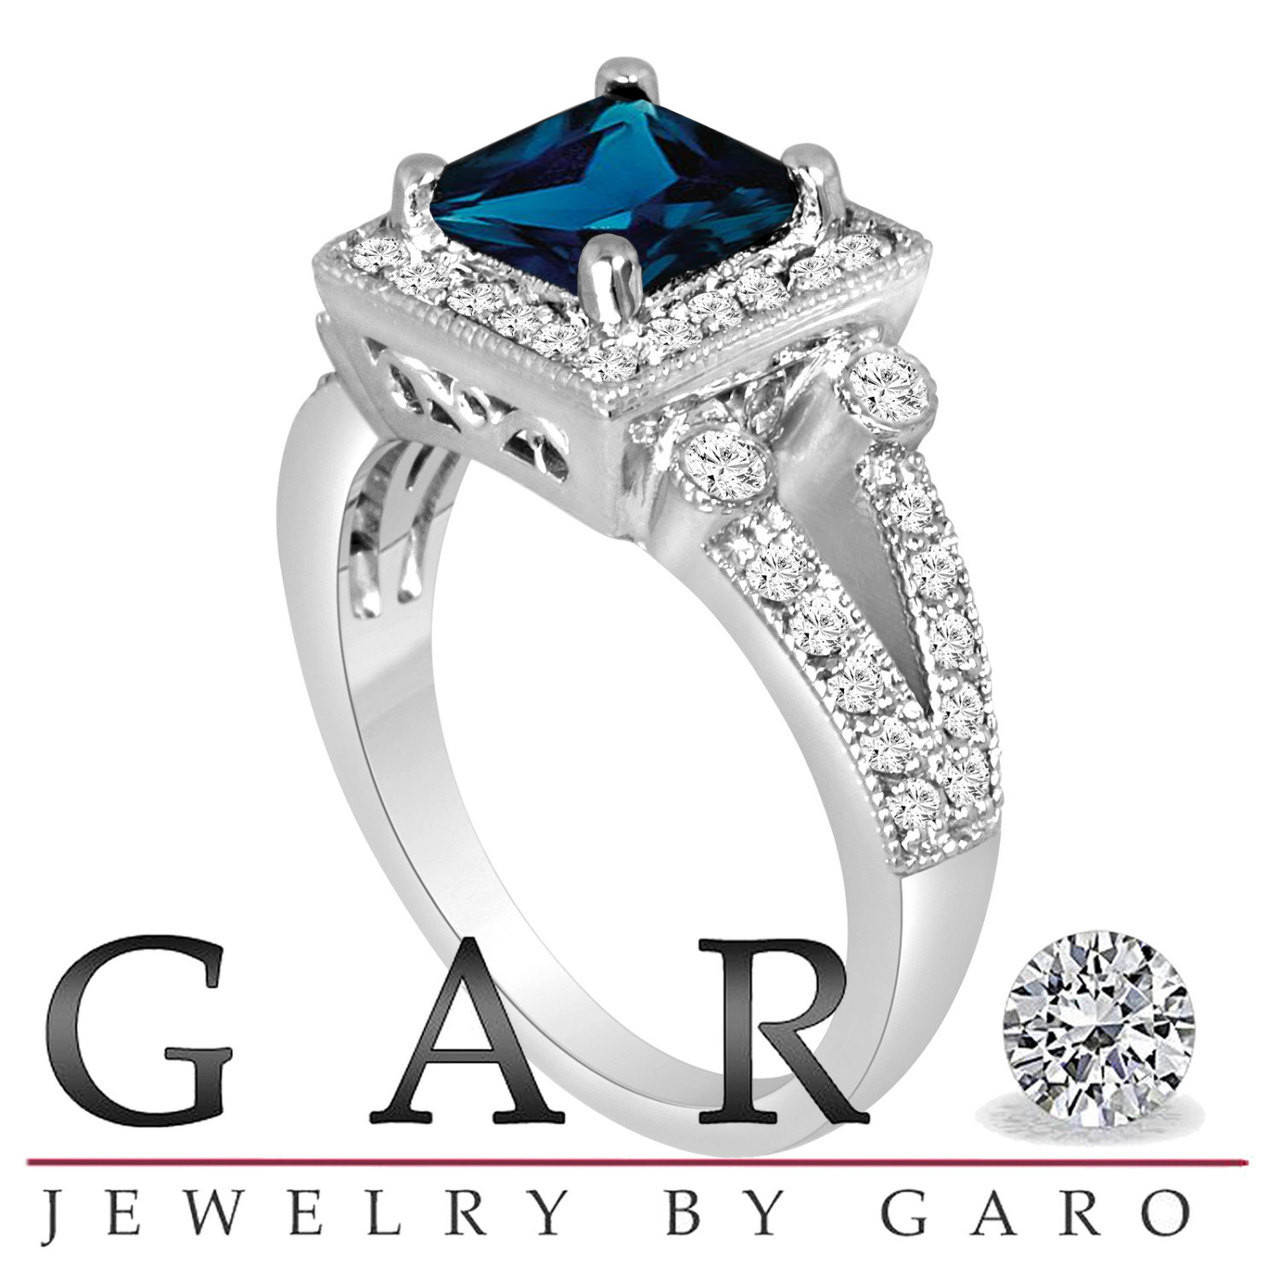 1.37 Ct Blue Topaz And Diamonds Ring 14k White Gold Natural With Latest Technology Engagement & Wedding Jewelry & Watches